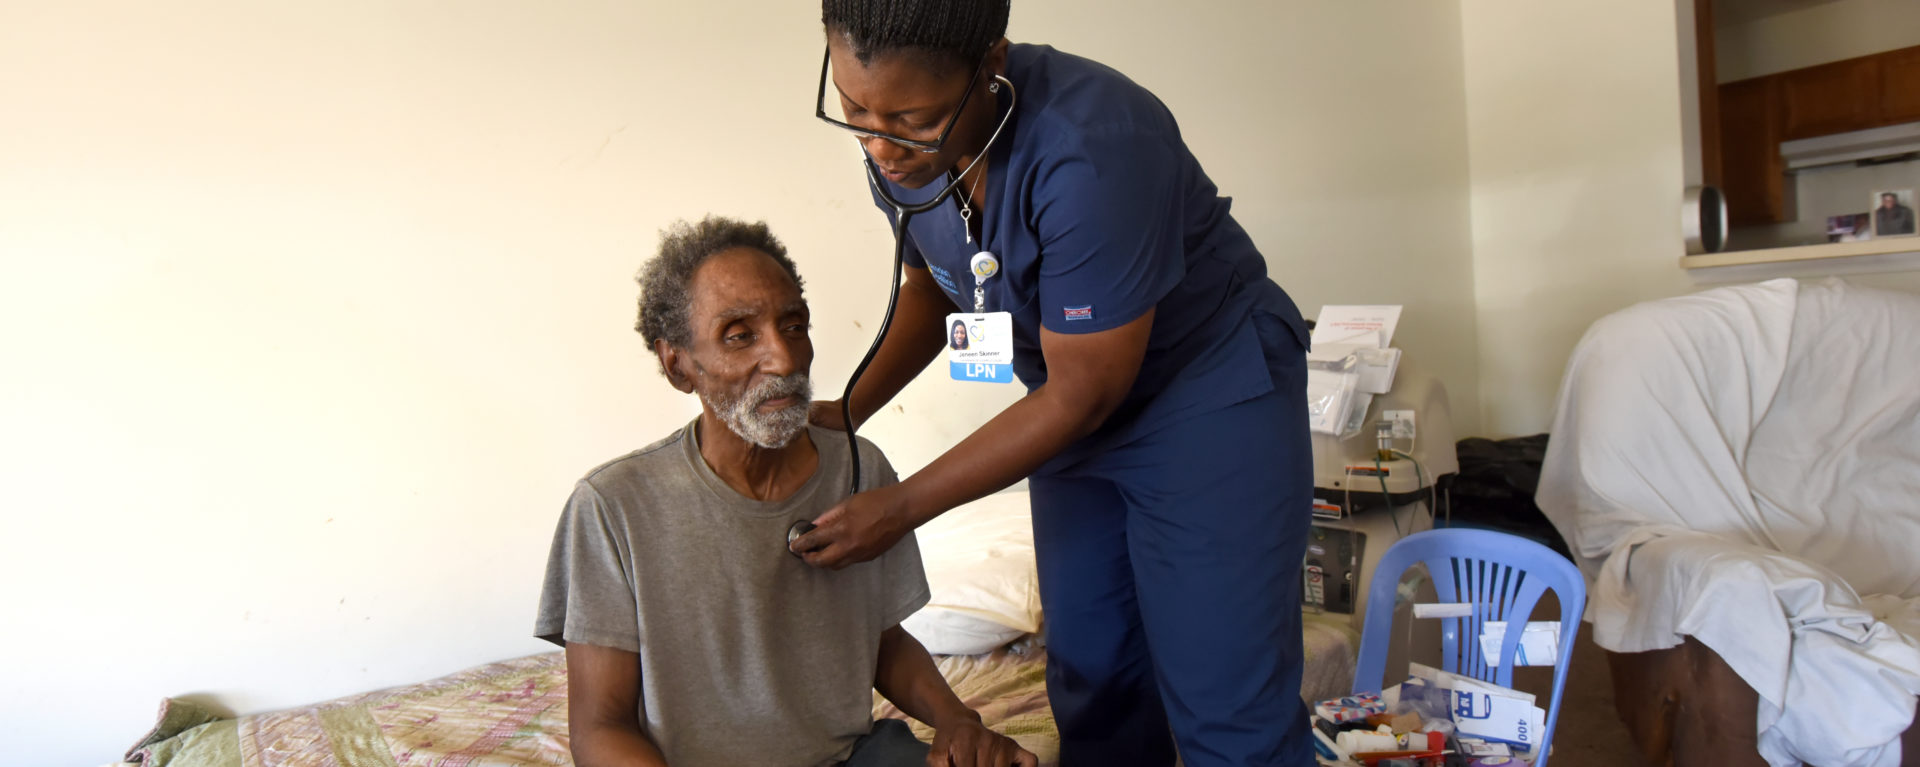 Jeneen Skinner listens to a patient's lungs during a home visit